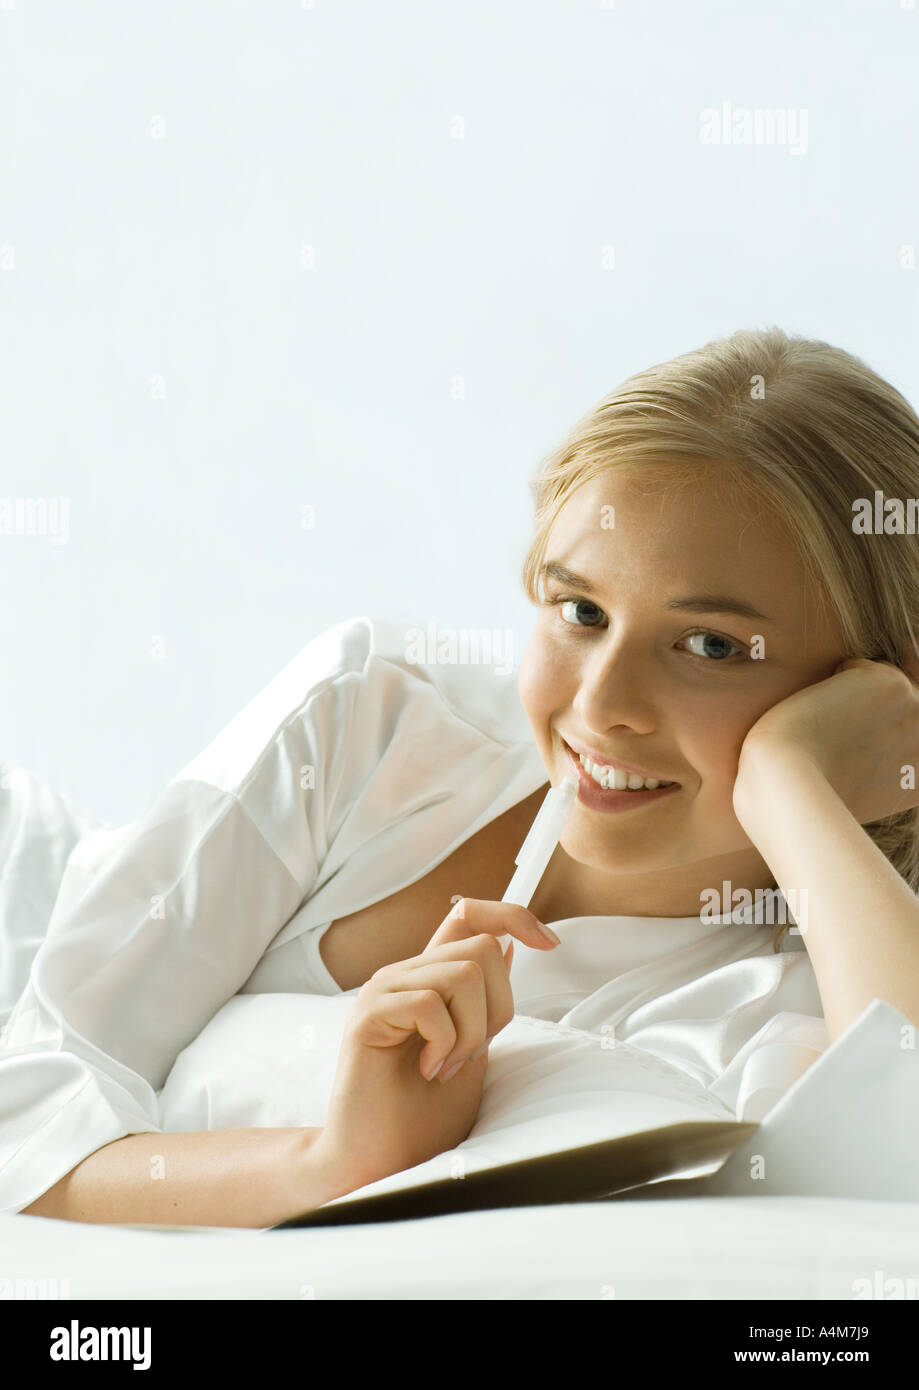 Young woman lying down with pen to lips - Stock Image